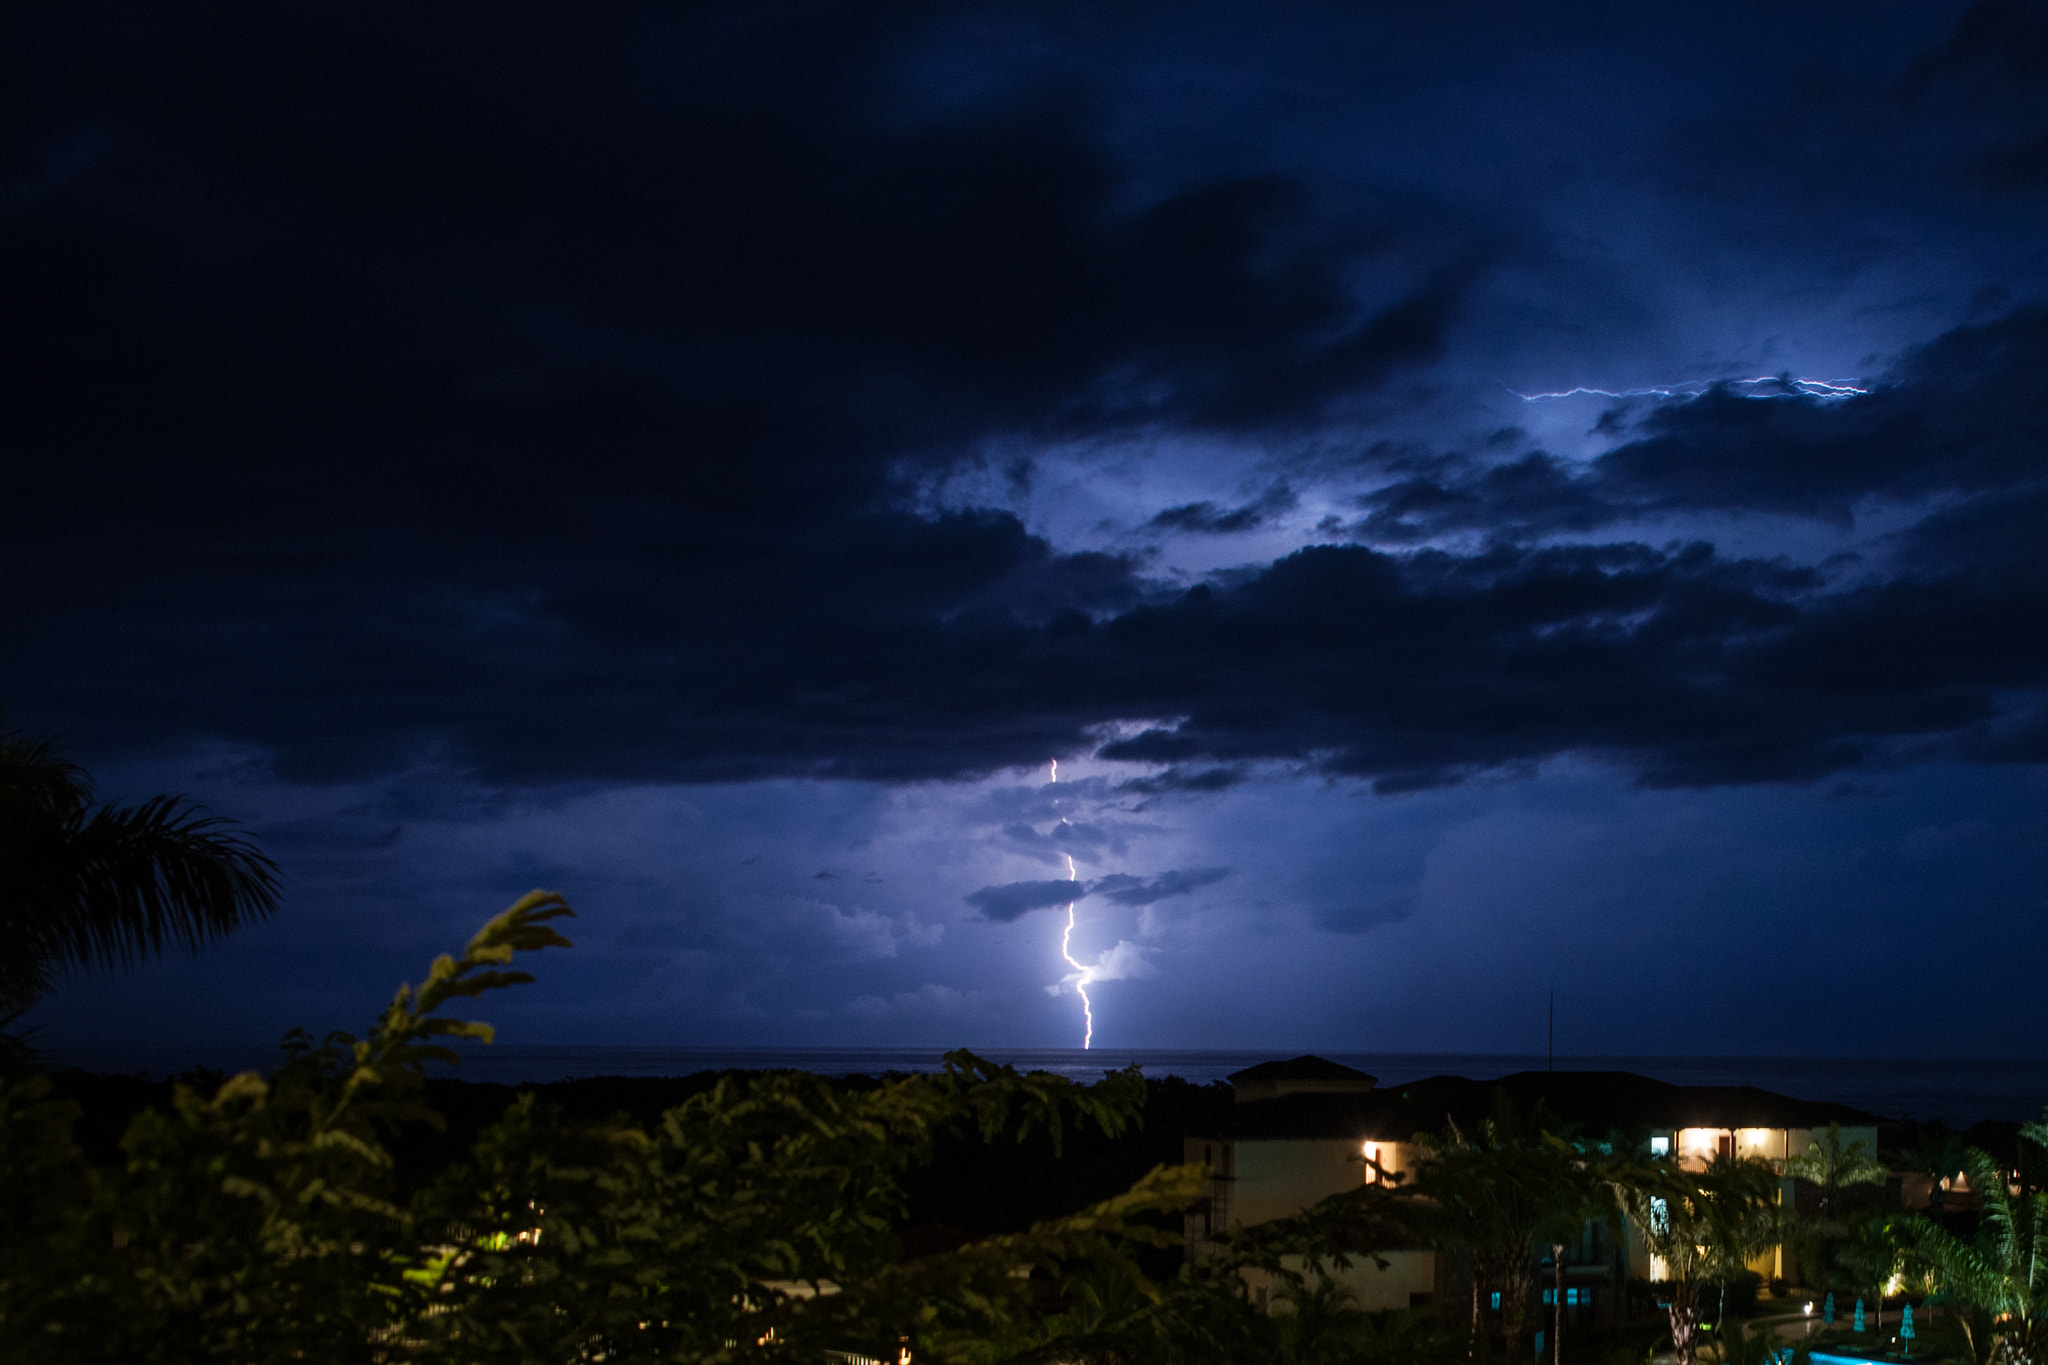 Photograph Guanacaste lightning by Sergio Quesada on 500px